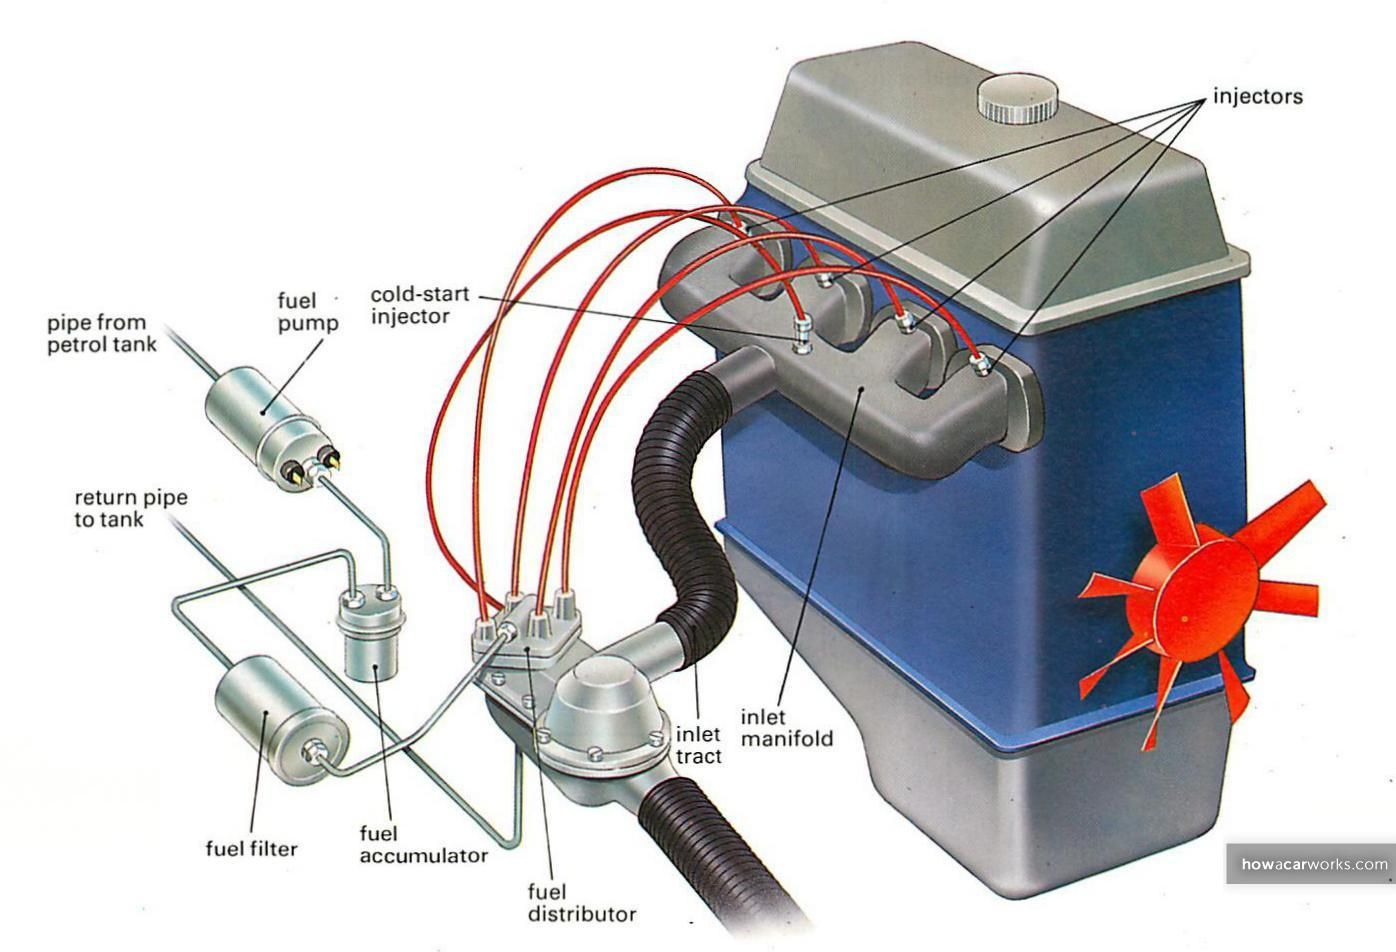 How A Fuel Injection System Works Engineer Mechanical Small Engine Filter Installation For The To Run Smoothly And Efficiently It Needs Be Provided With Right Quantity Of Air Mixture